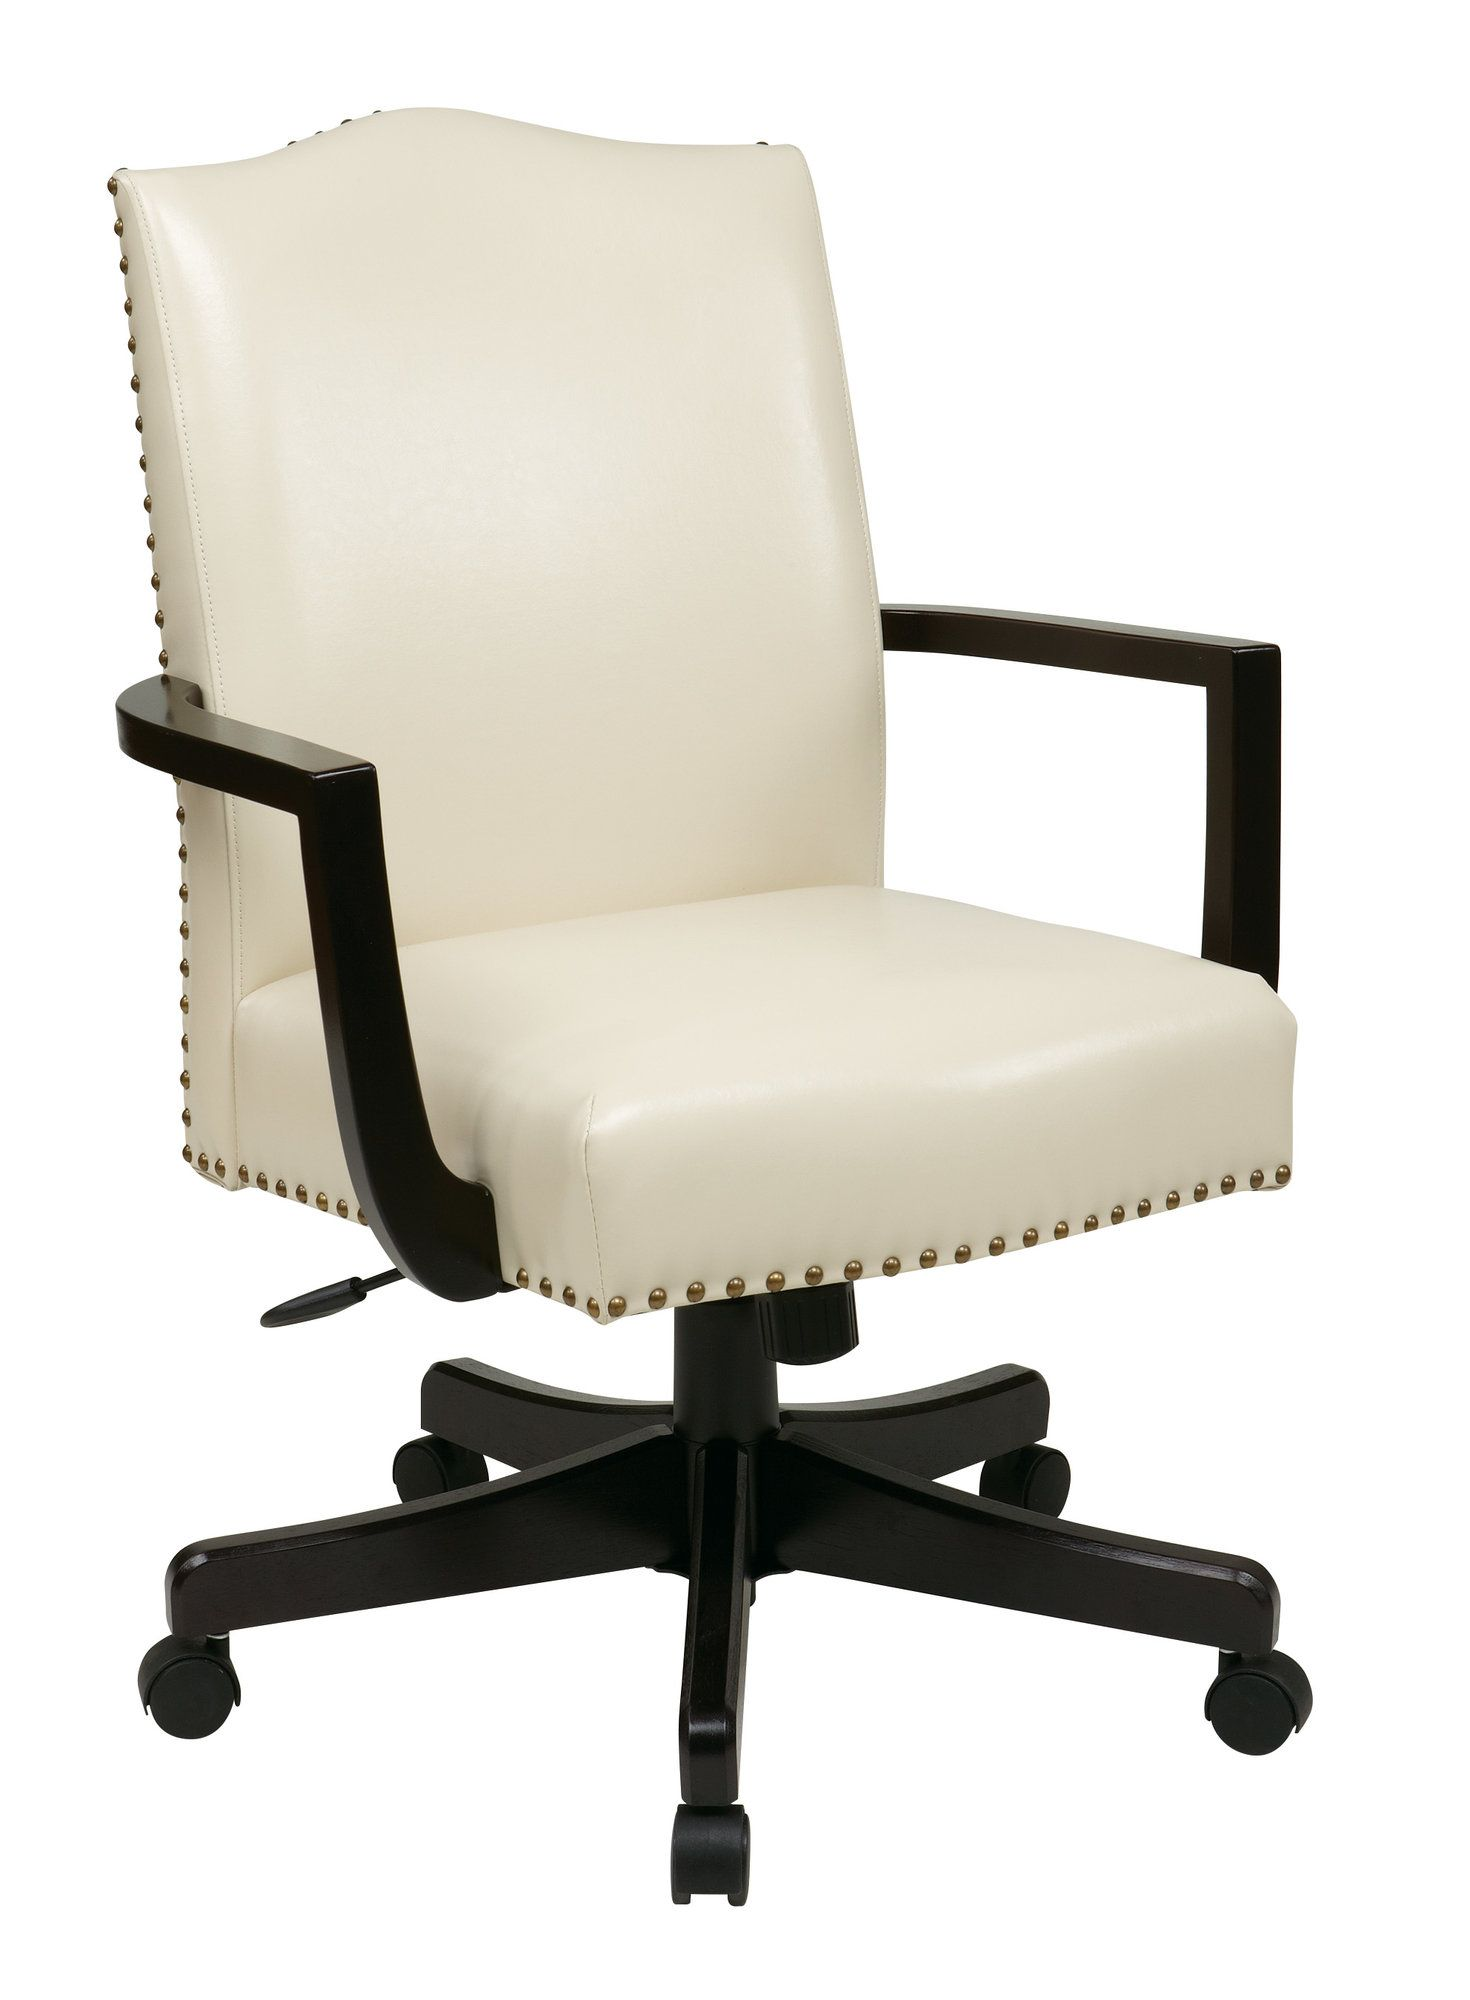 Claudine office chair office chair leather office chair